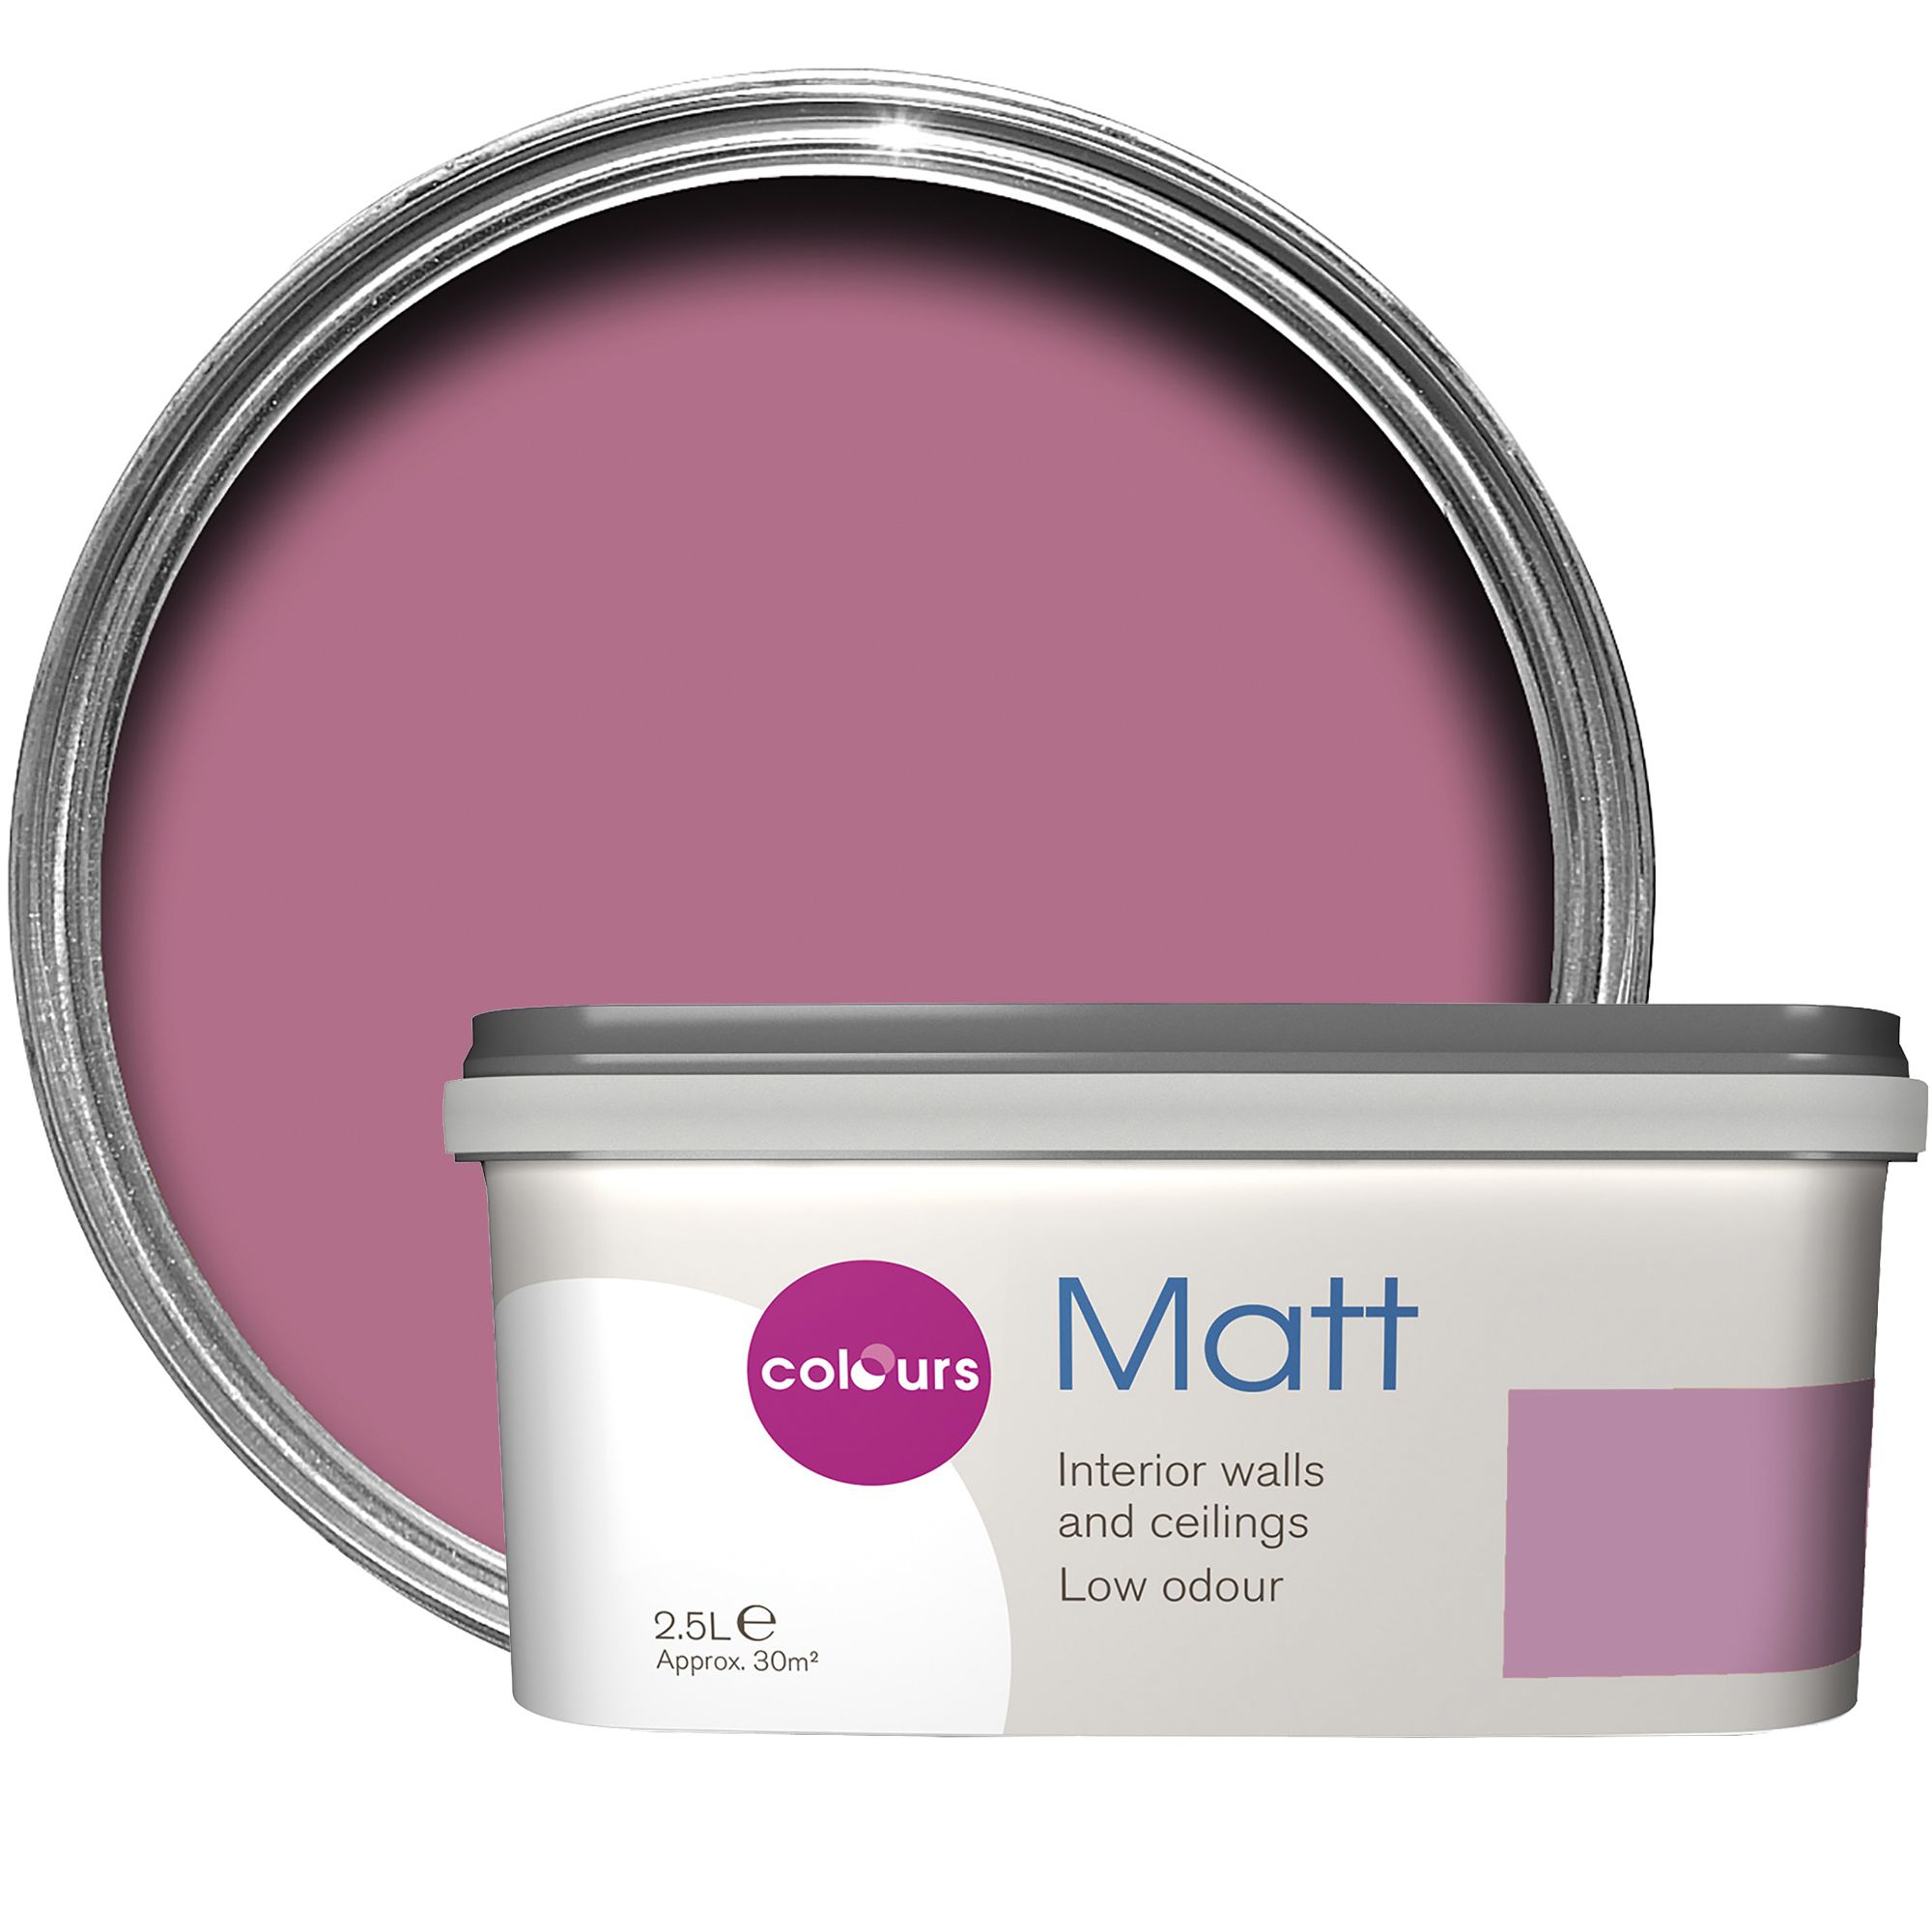 Colours standard princess matt emulsion paint 2 5l for B q bedroom furniture sets